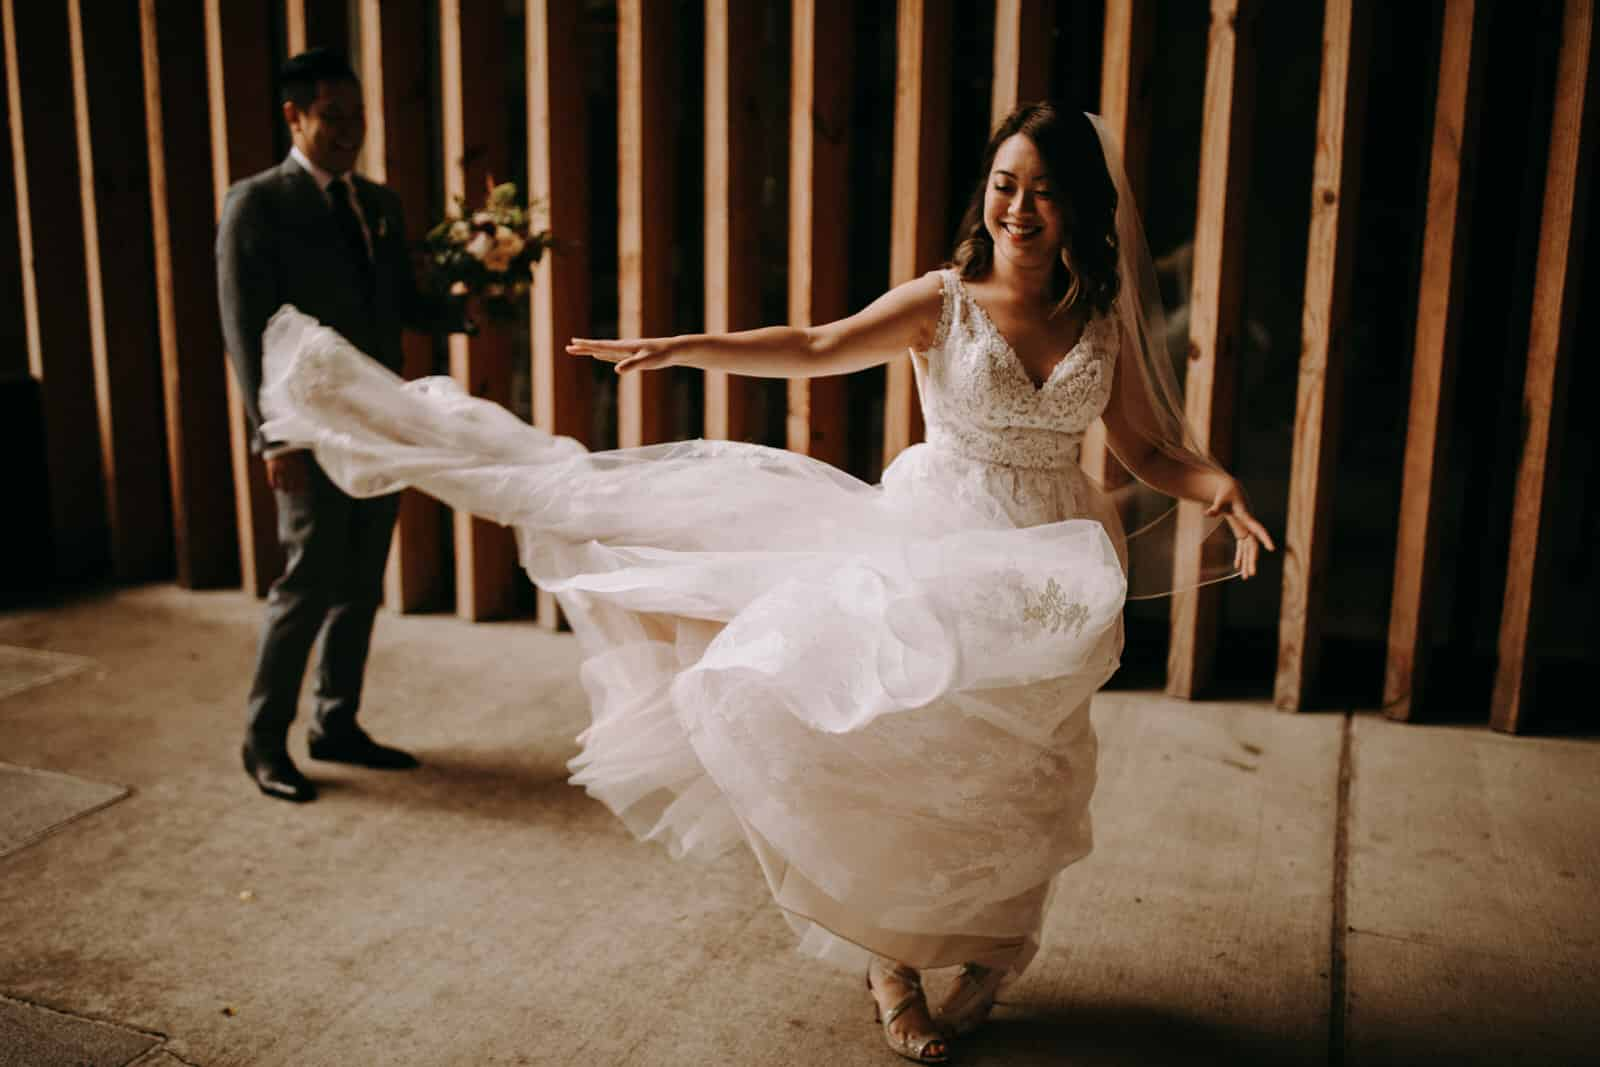 The bride is throwing her dress in the air and the groom is standing behind her.